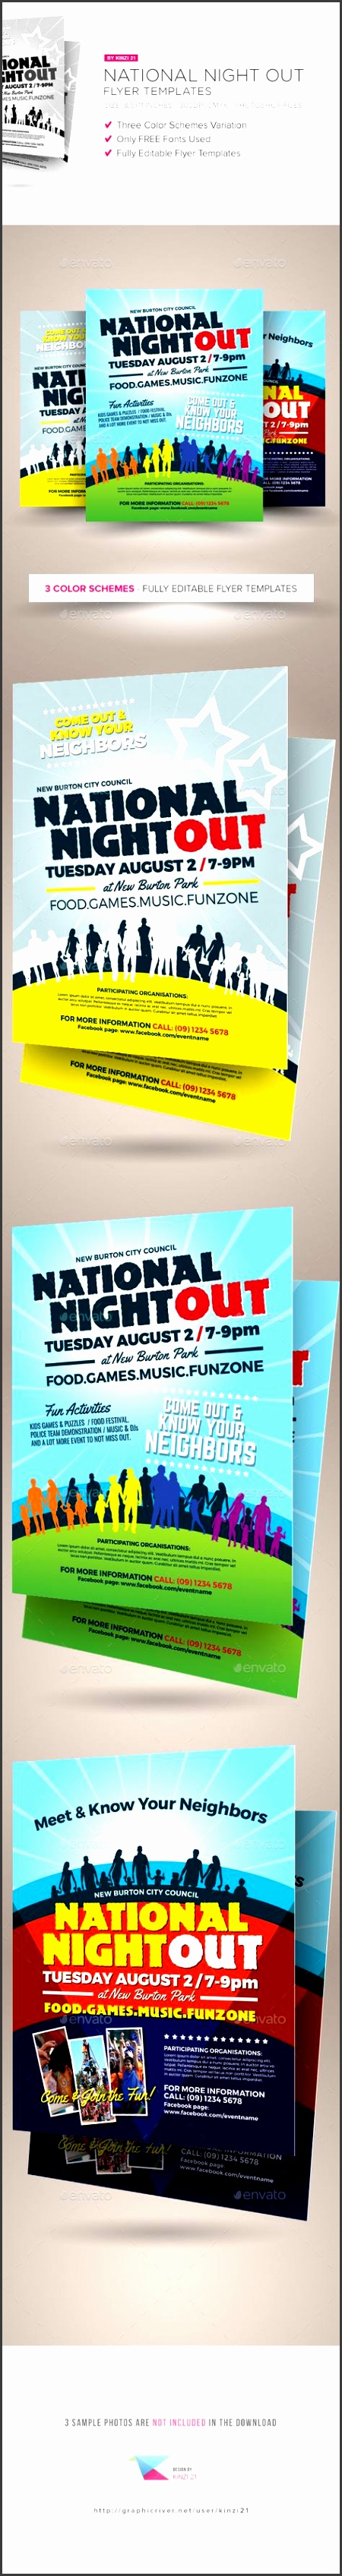 d2a78e f961a70ae97 national night out ideas munity events